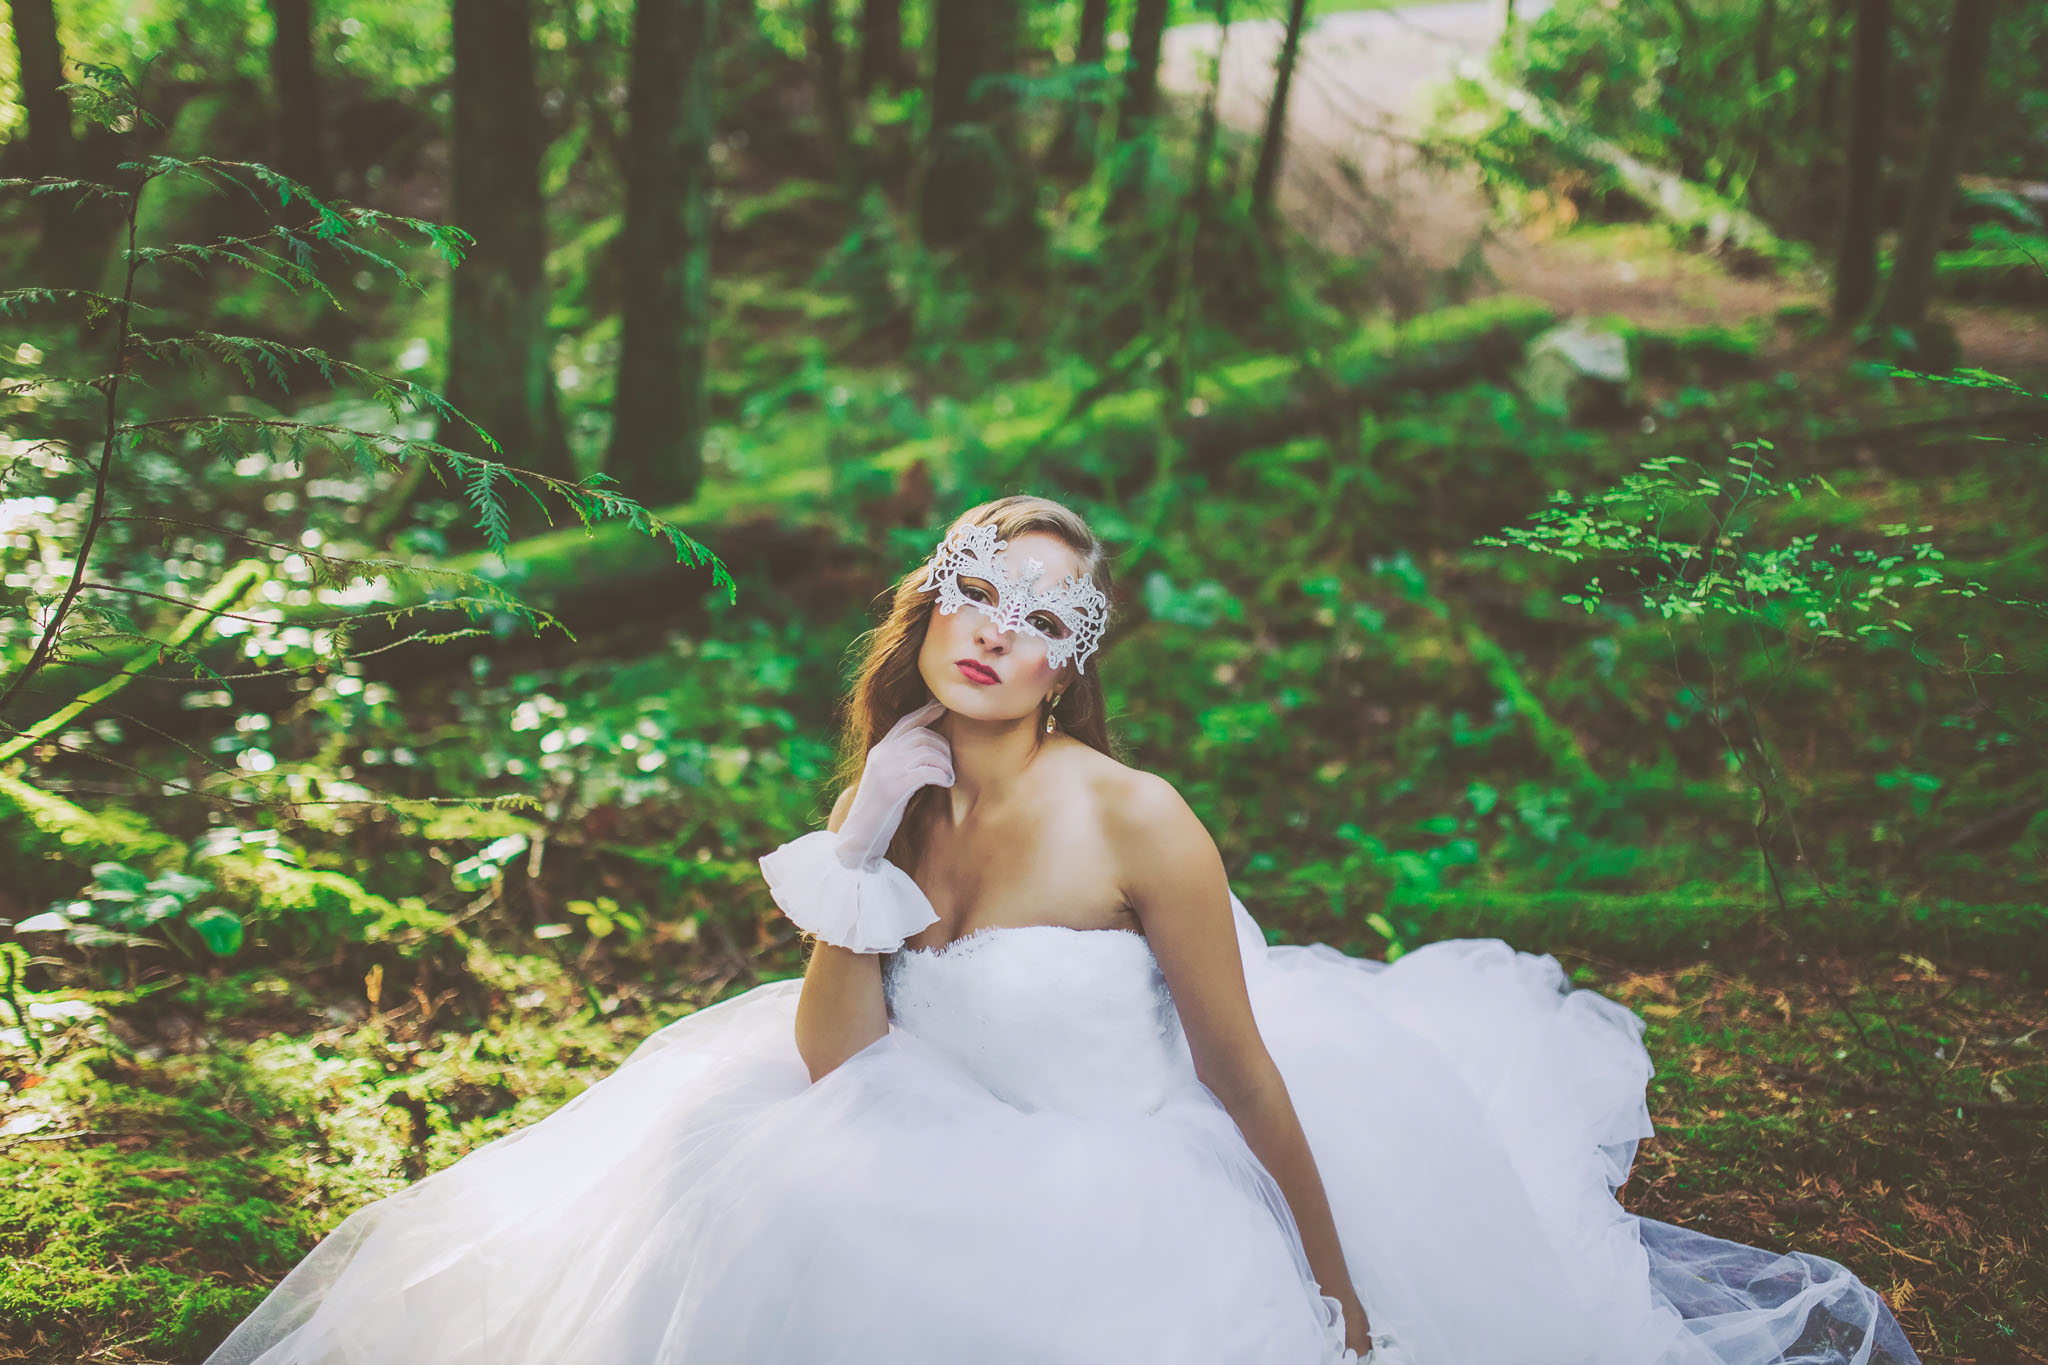 styled dreamy bridal shoot, jennifer picard photography, sunshine coast wedding photographer